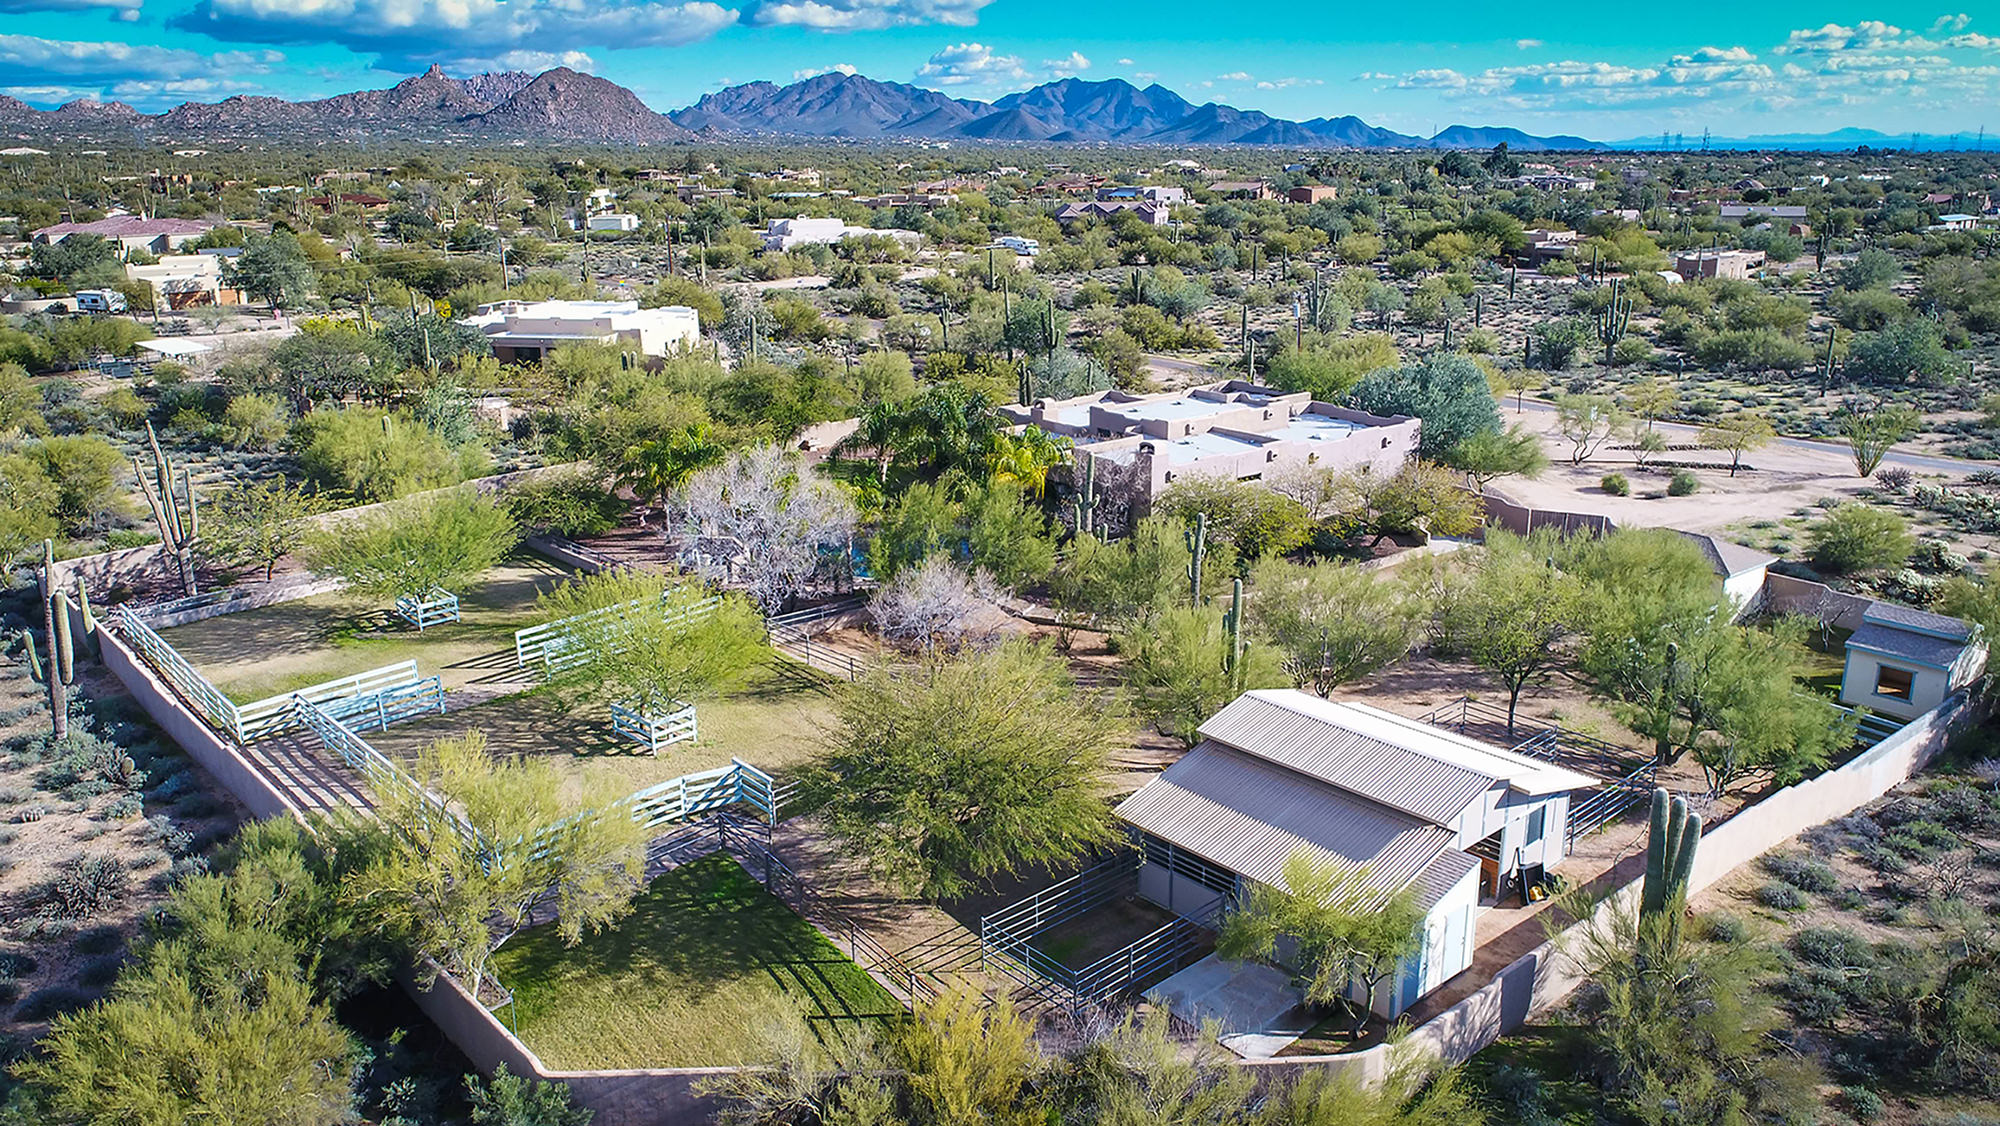 Overview of enclosed lush residential home and horse facility in North Scottsdale.